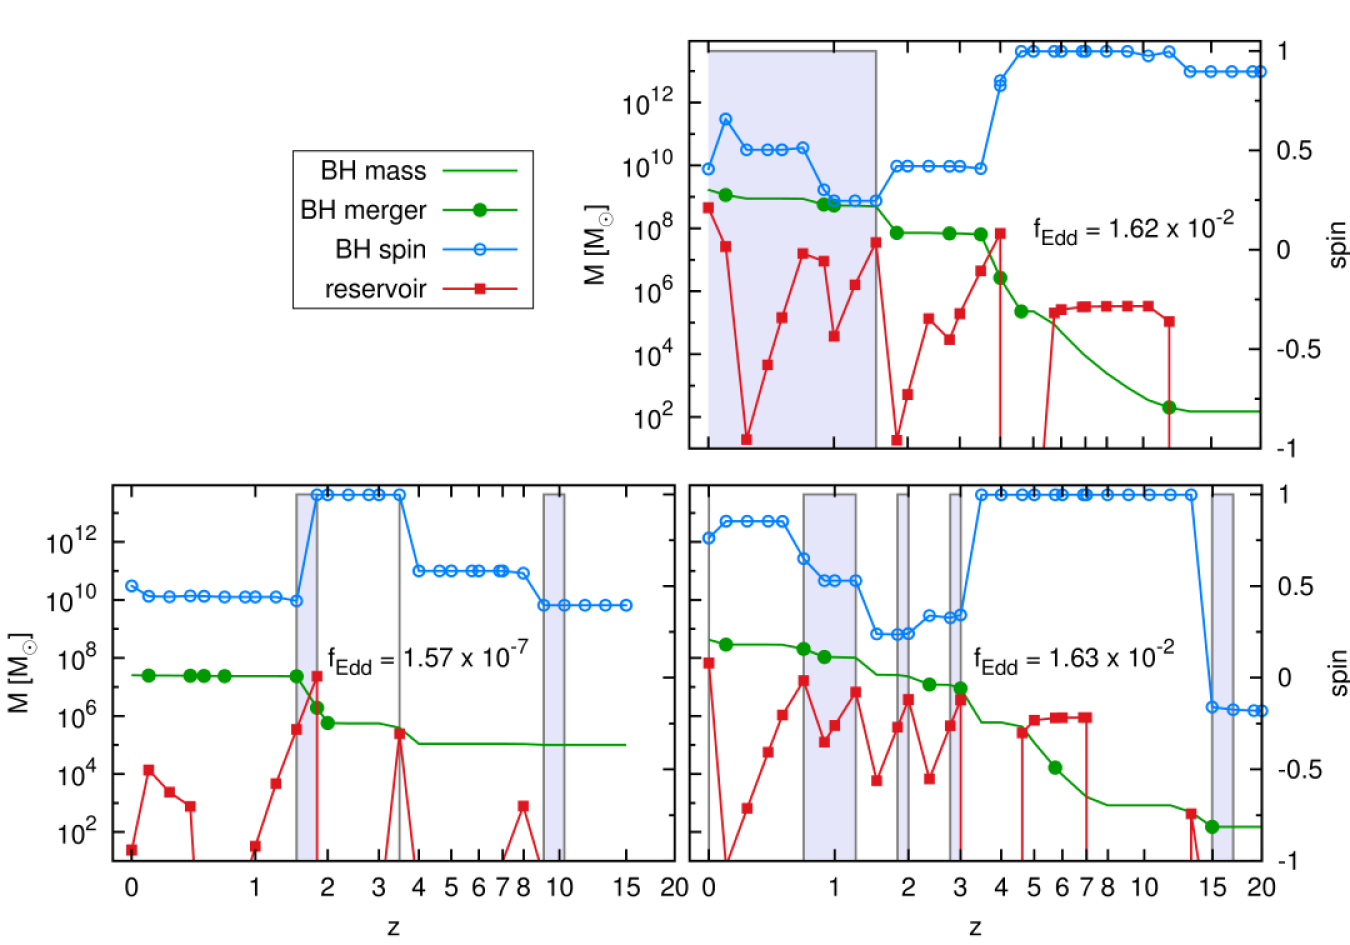 Examples of main-progenitor evolutionary tracks of three MBHs selected in the